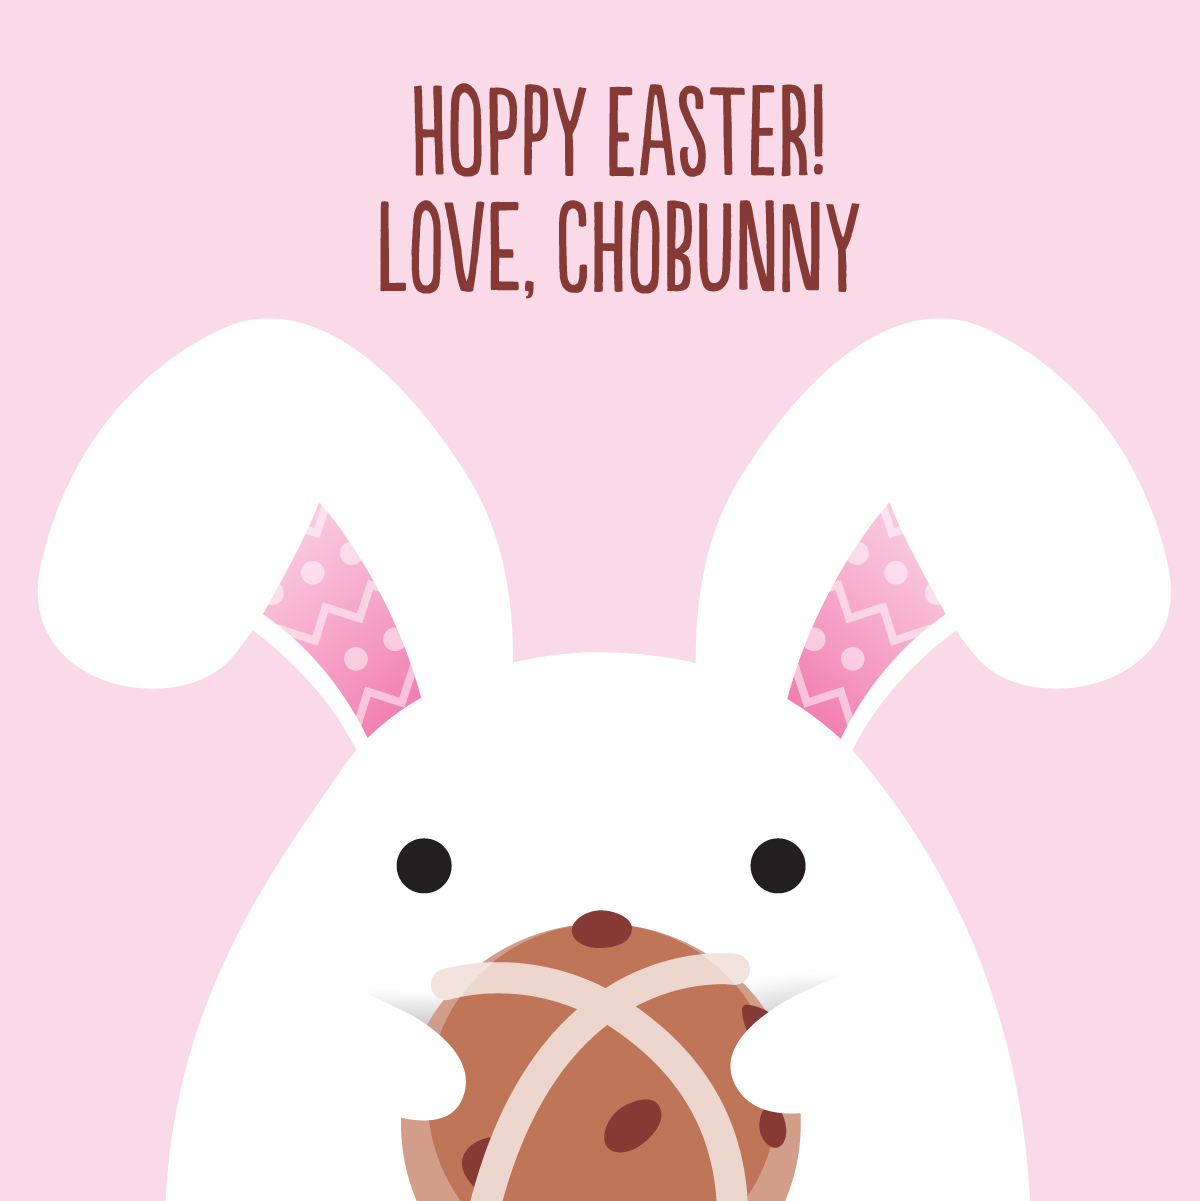 Chobani Chobunny Easter Flip Hot Cross Bun Illustration Copywriting